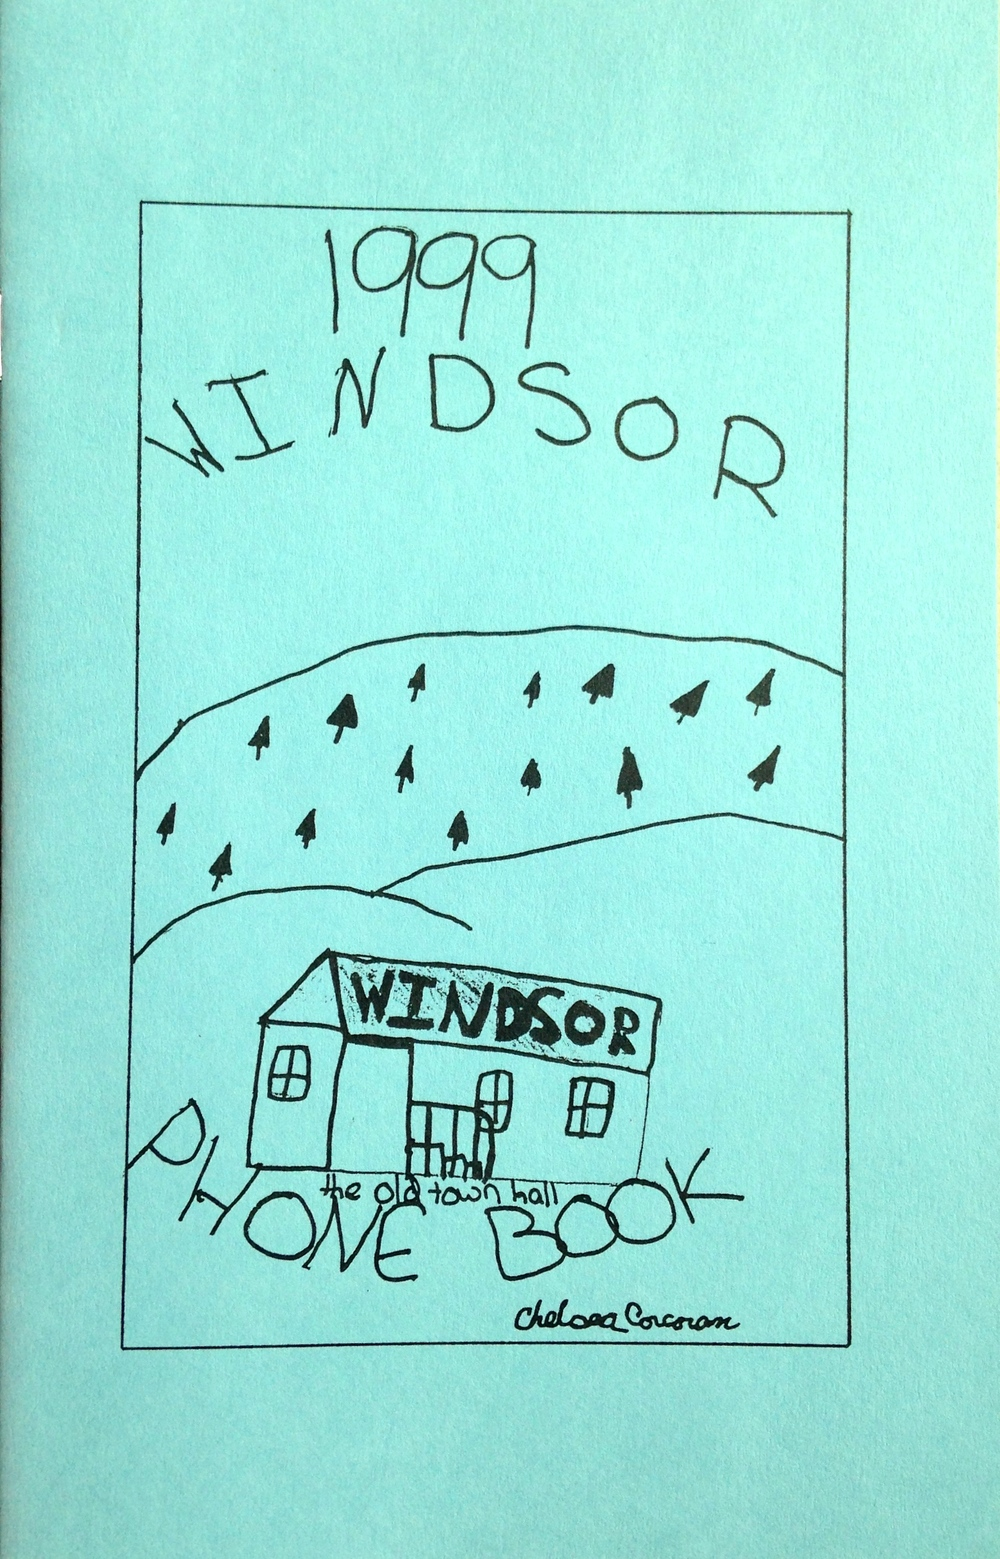 Cover art by Chelsea Corcoran (Grade 5)